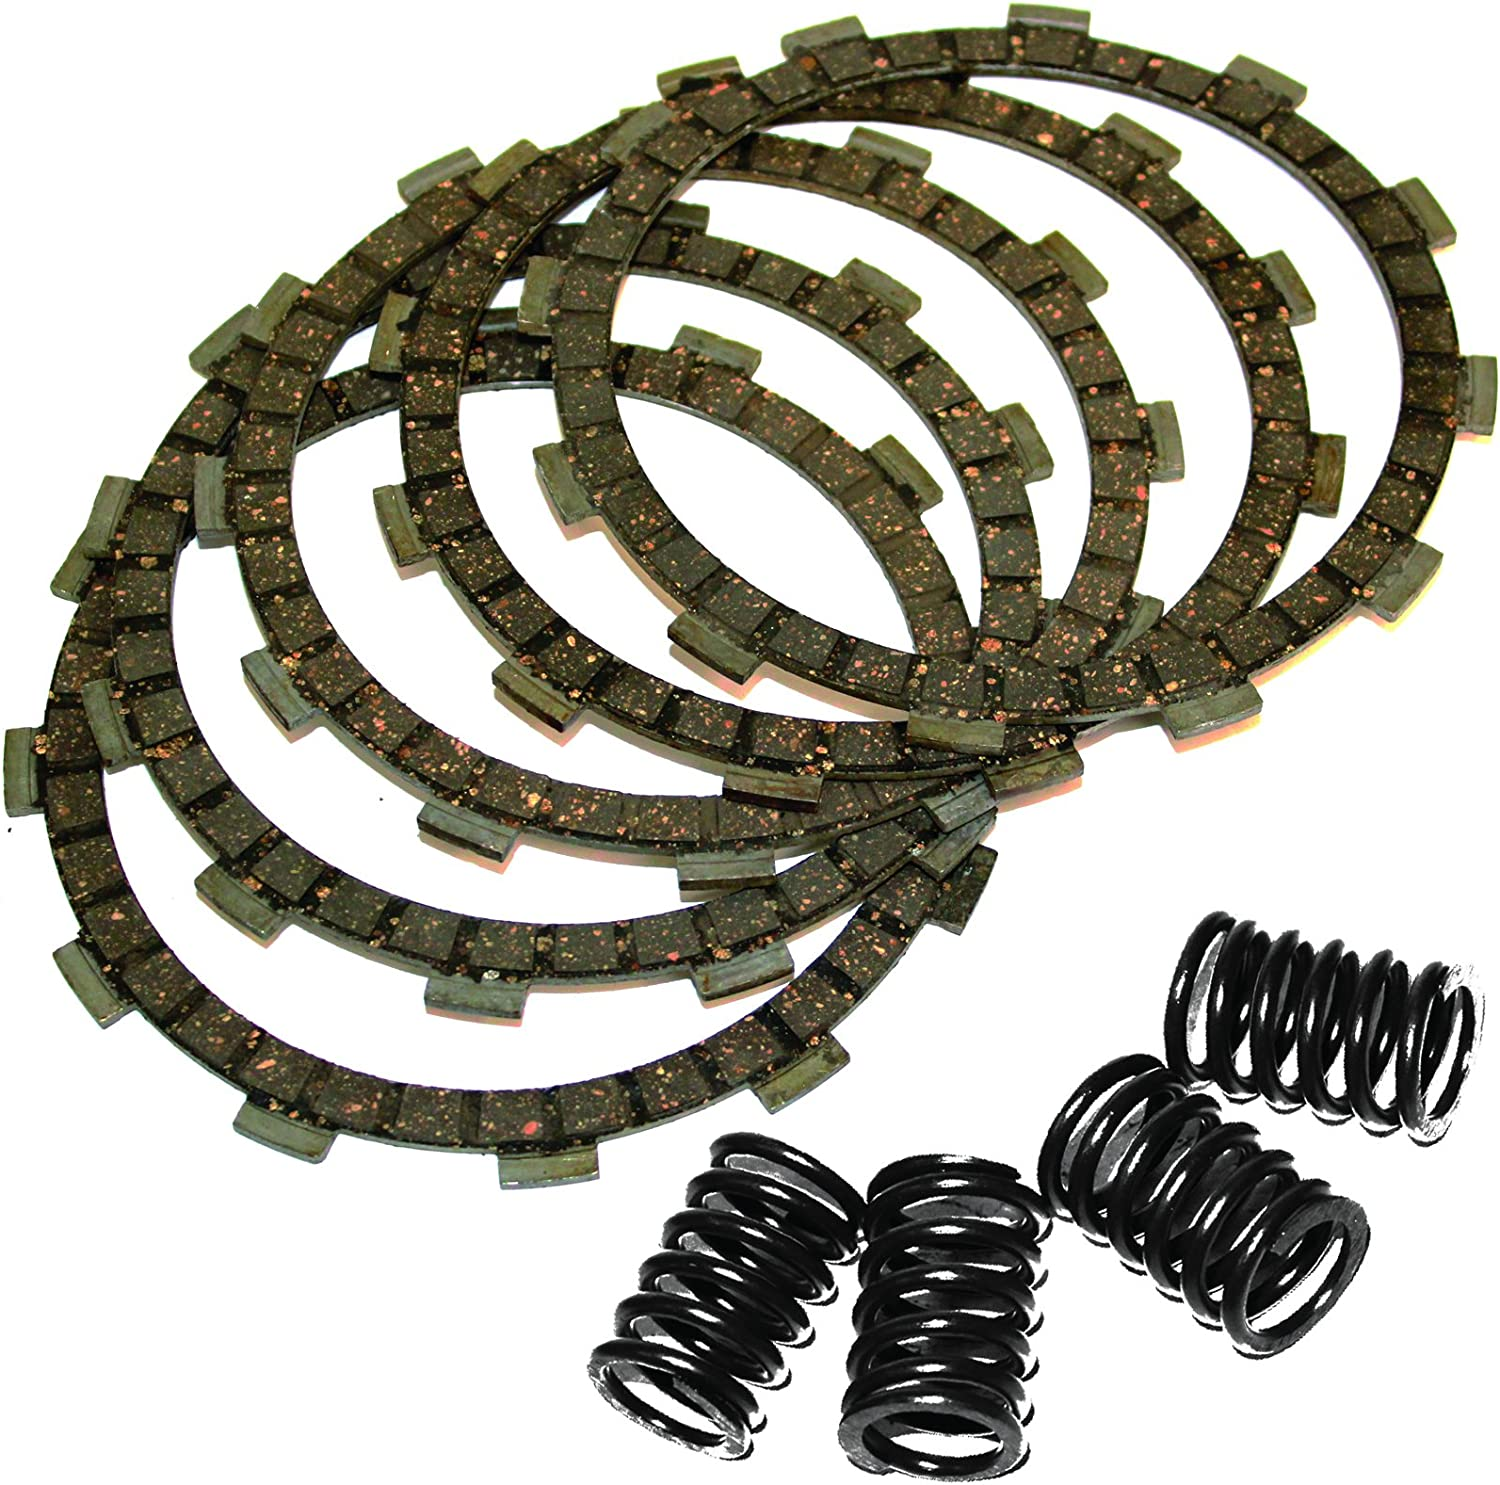 Caltric Clutch Friction Plates /& Springs Compatible with Kawasaki Klf300 Klf-300 Bayou 300 4X4 1989-1997